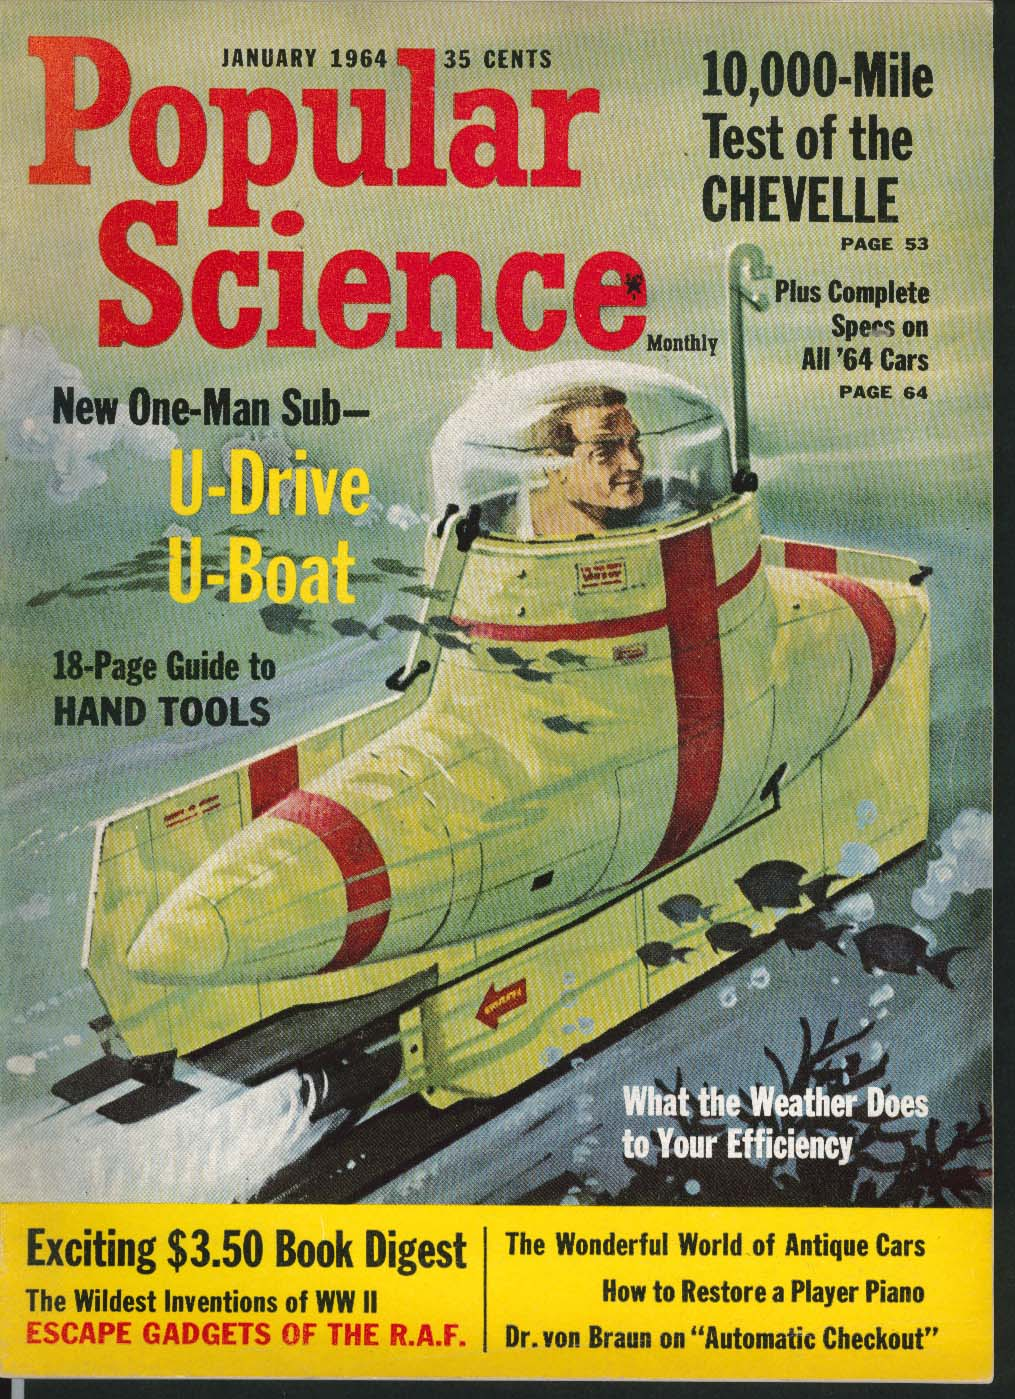 Image for POPULAR SCIENCE One-Man Submarine Chevrolet Chevelle road test ++ 1 1964